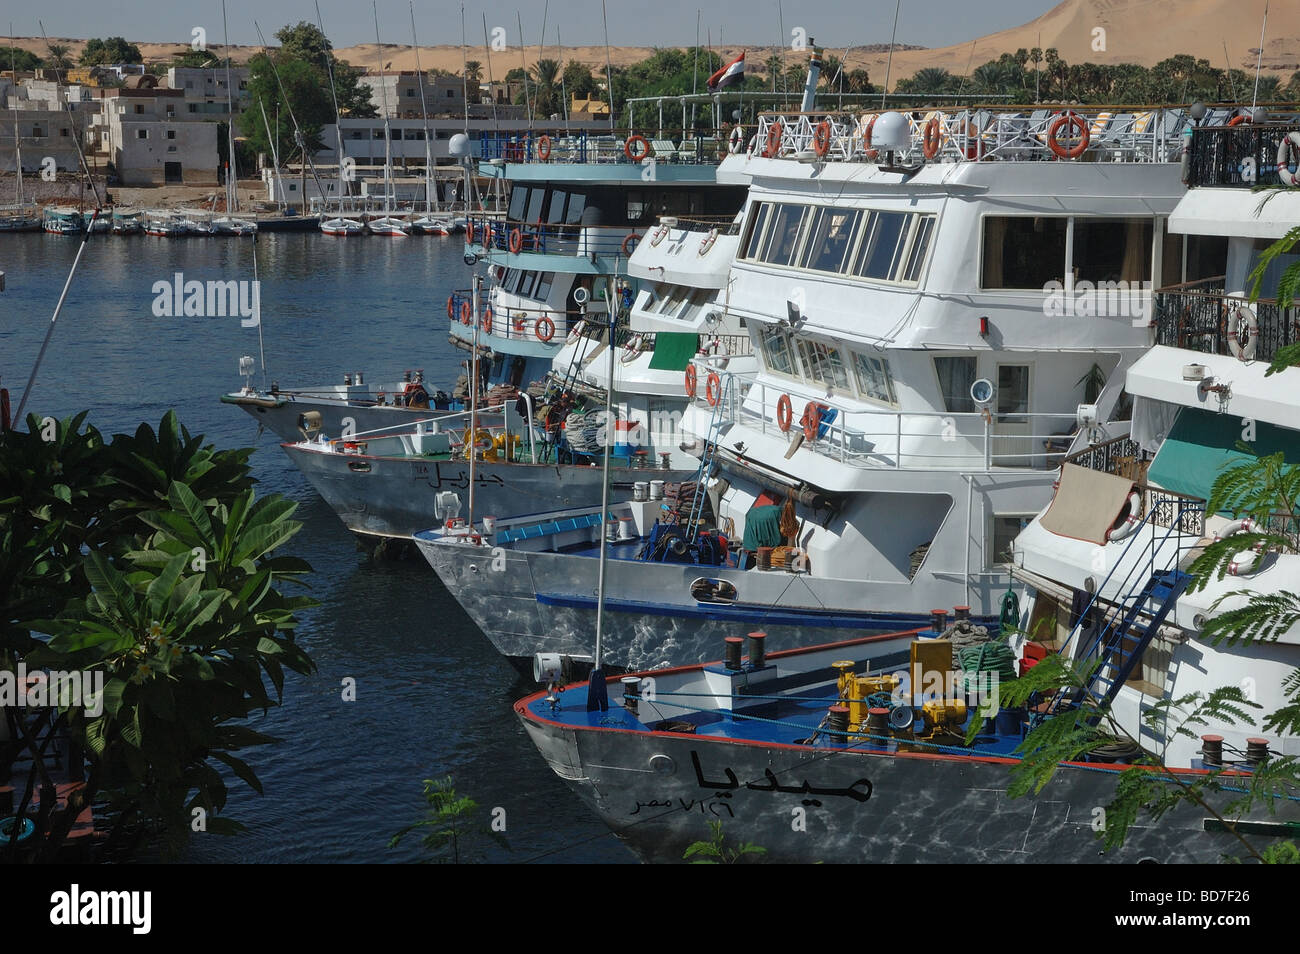 Nile cruiser vessels docked in the Nile River in Aswan southern Egypt - Stock Image